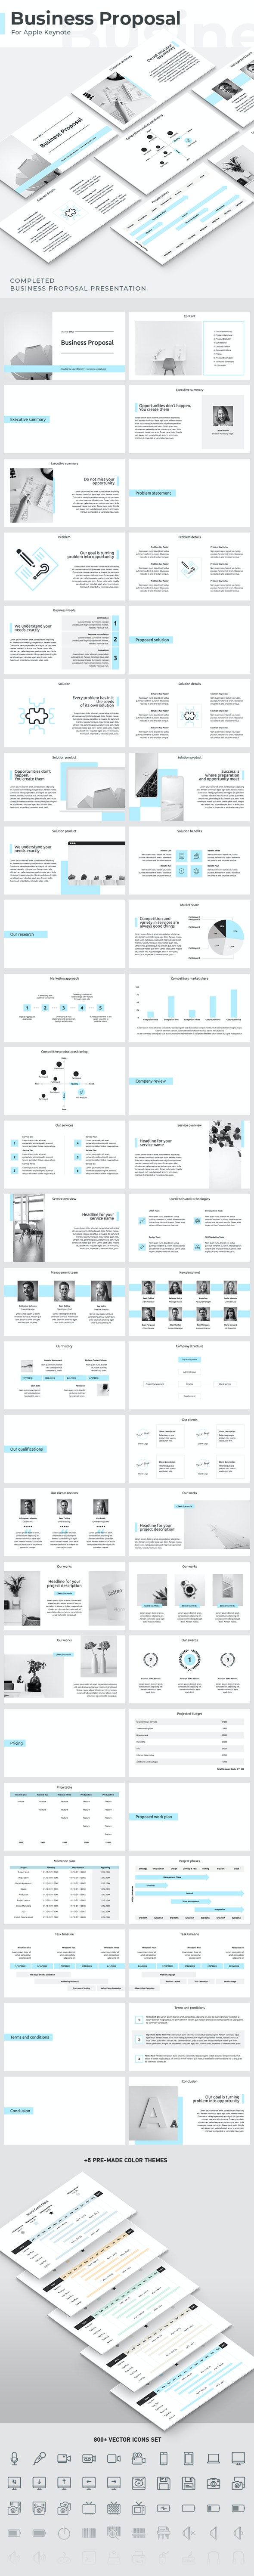 Business Proposal Keynote Template - Business Keynote Templates